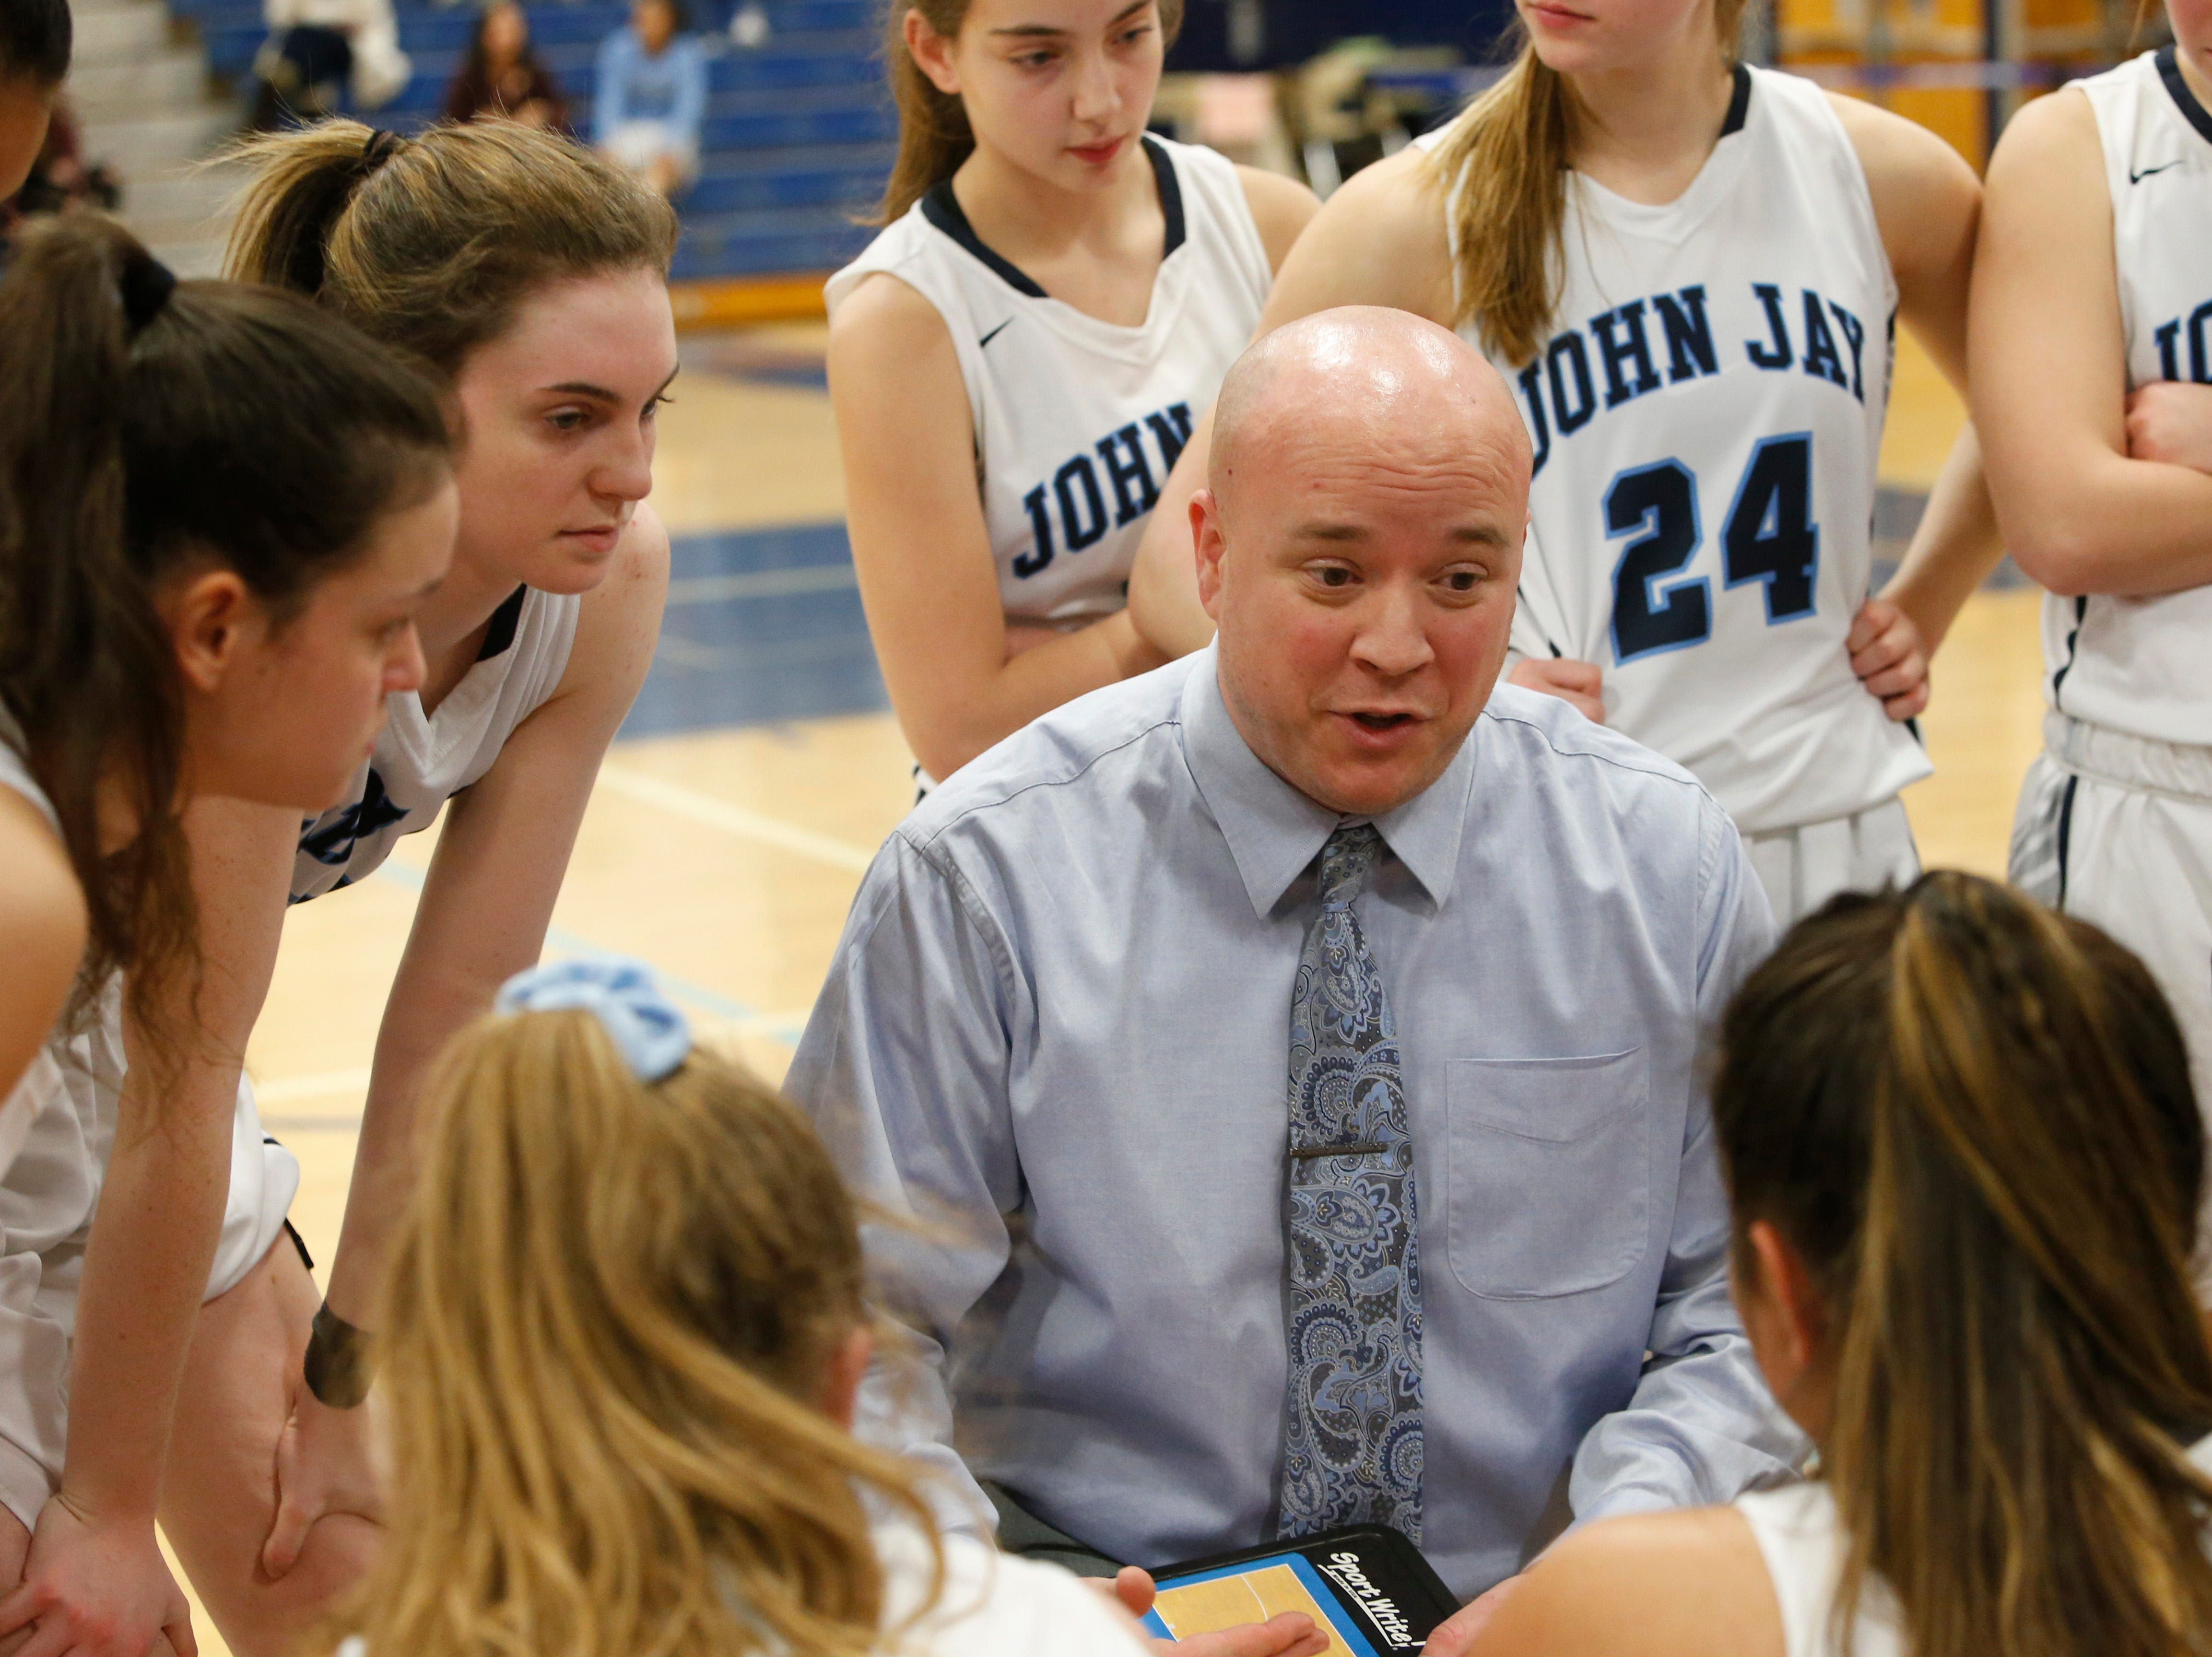 John Jay girls basketball coach Larry Brooks discusses strategy with his team in a timeout during Wednesday's game.